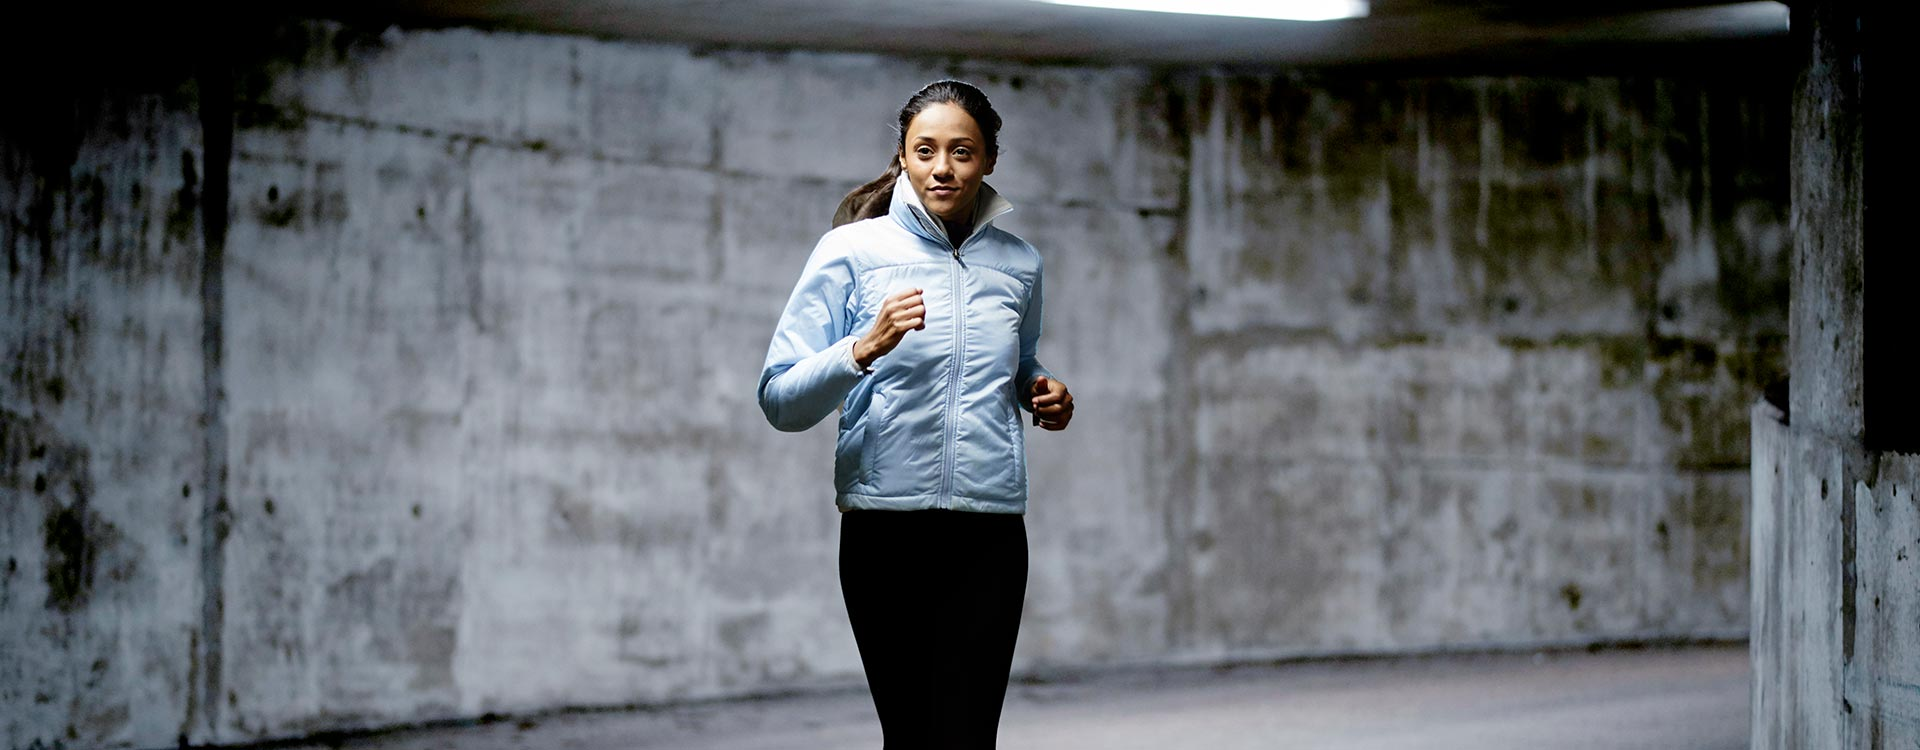 Female Professional Running in Tunnel